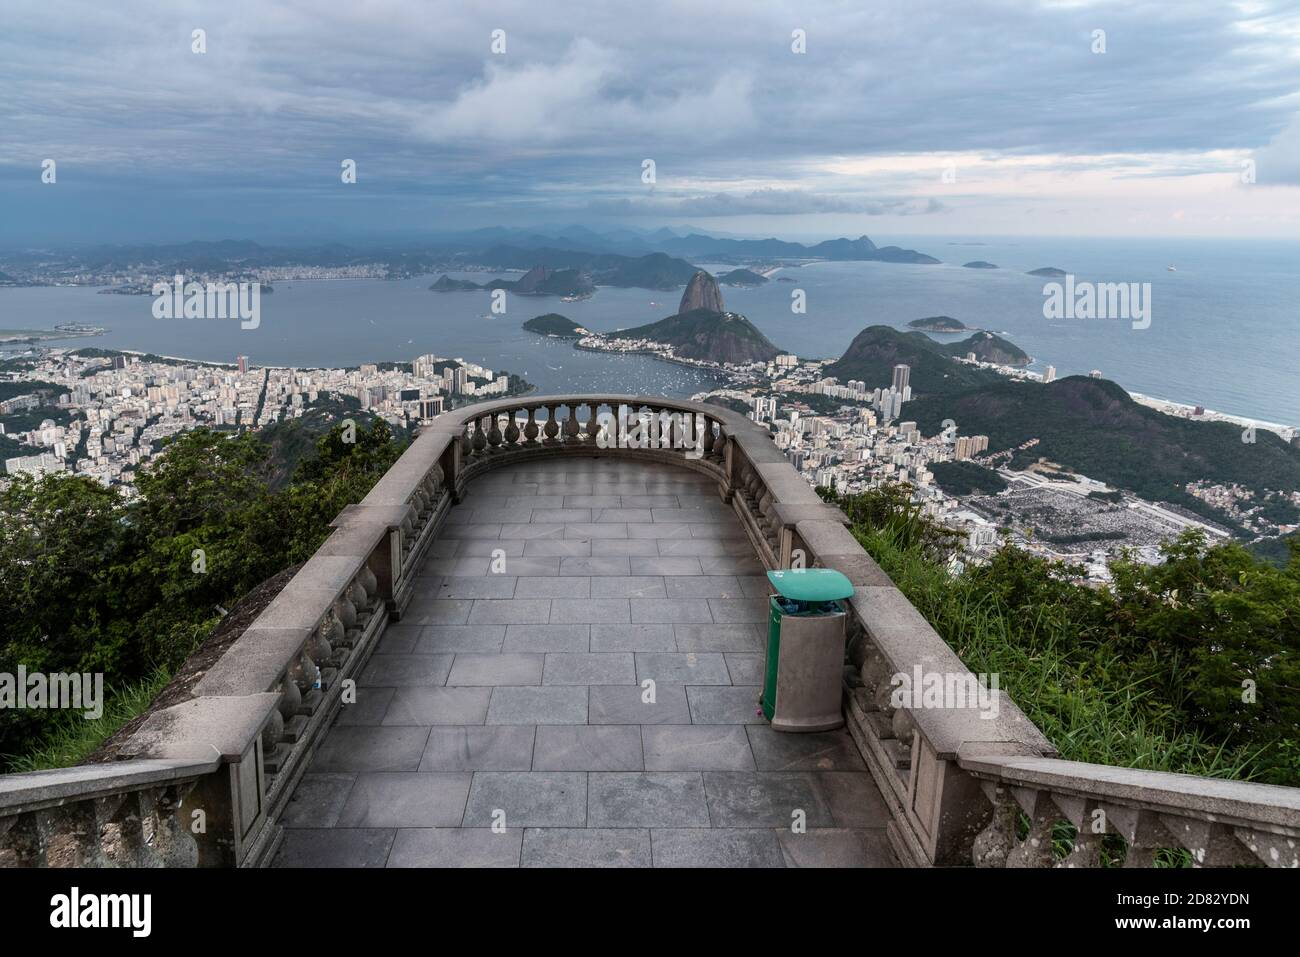 Beautiful view from empty Christ the Redeemer Statue viewpoint to city, Tijuca Forest, Rio de Janeiro, Brazil Stock Photo